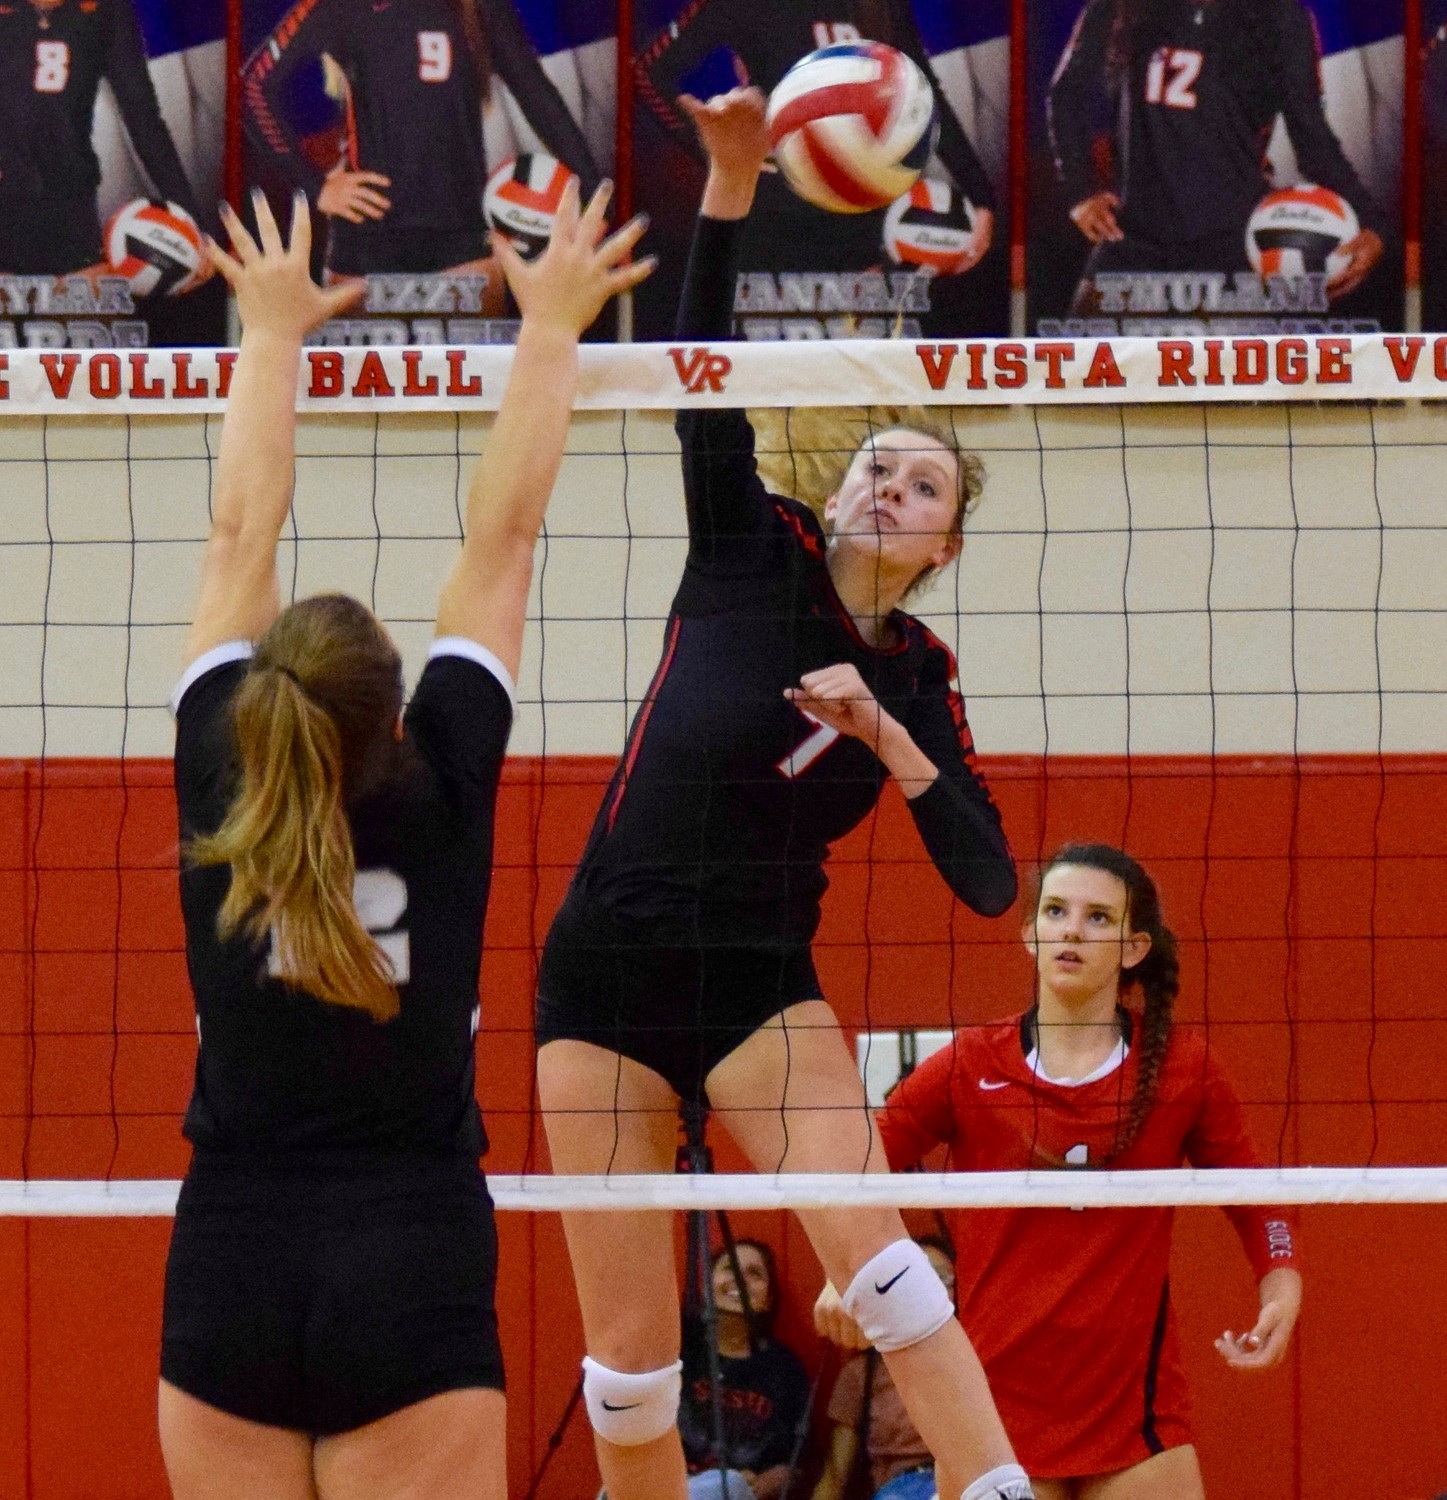 Kate Childre and Vista Ridge swept Vandegrift 3-0 (25-15, 25-22, 25-17) to pick up their second straight district win on Tuesday night.